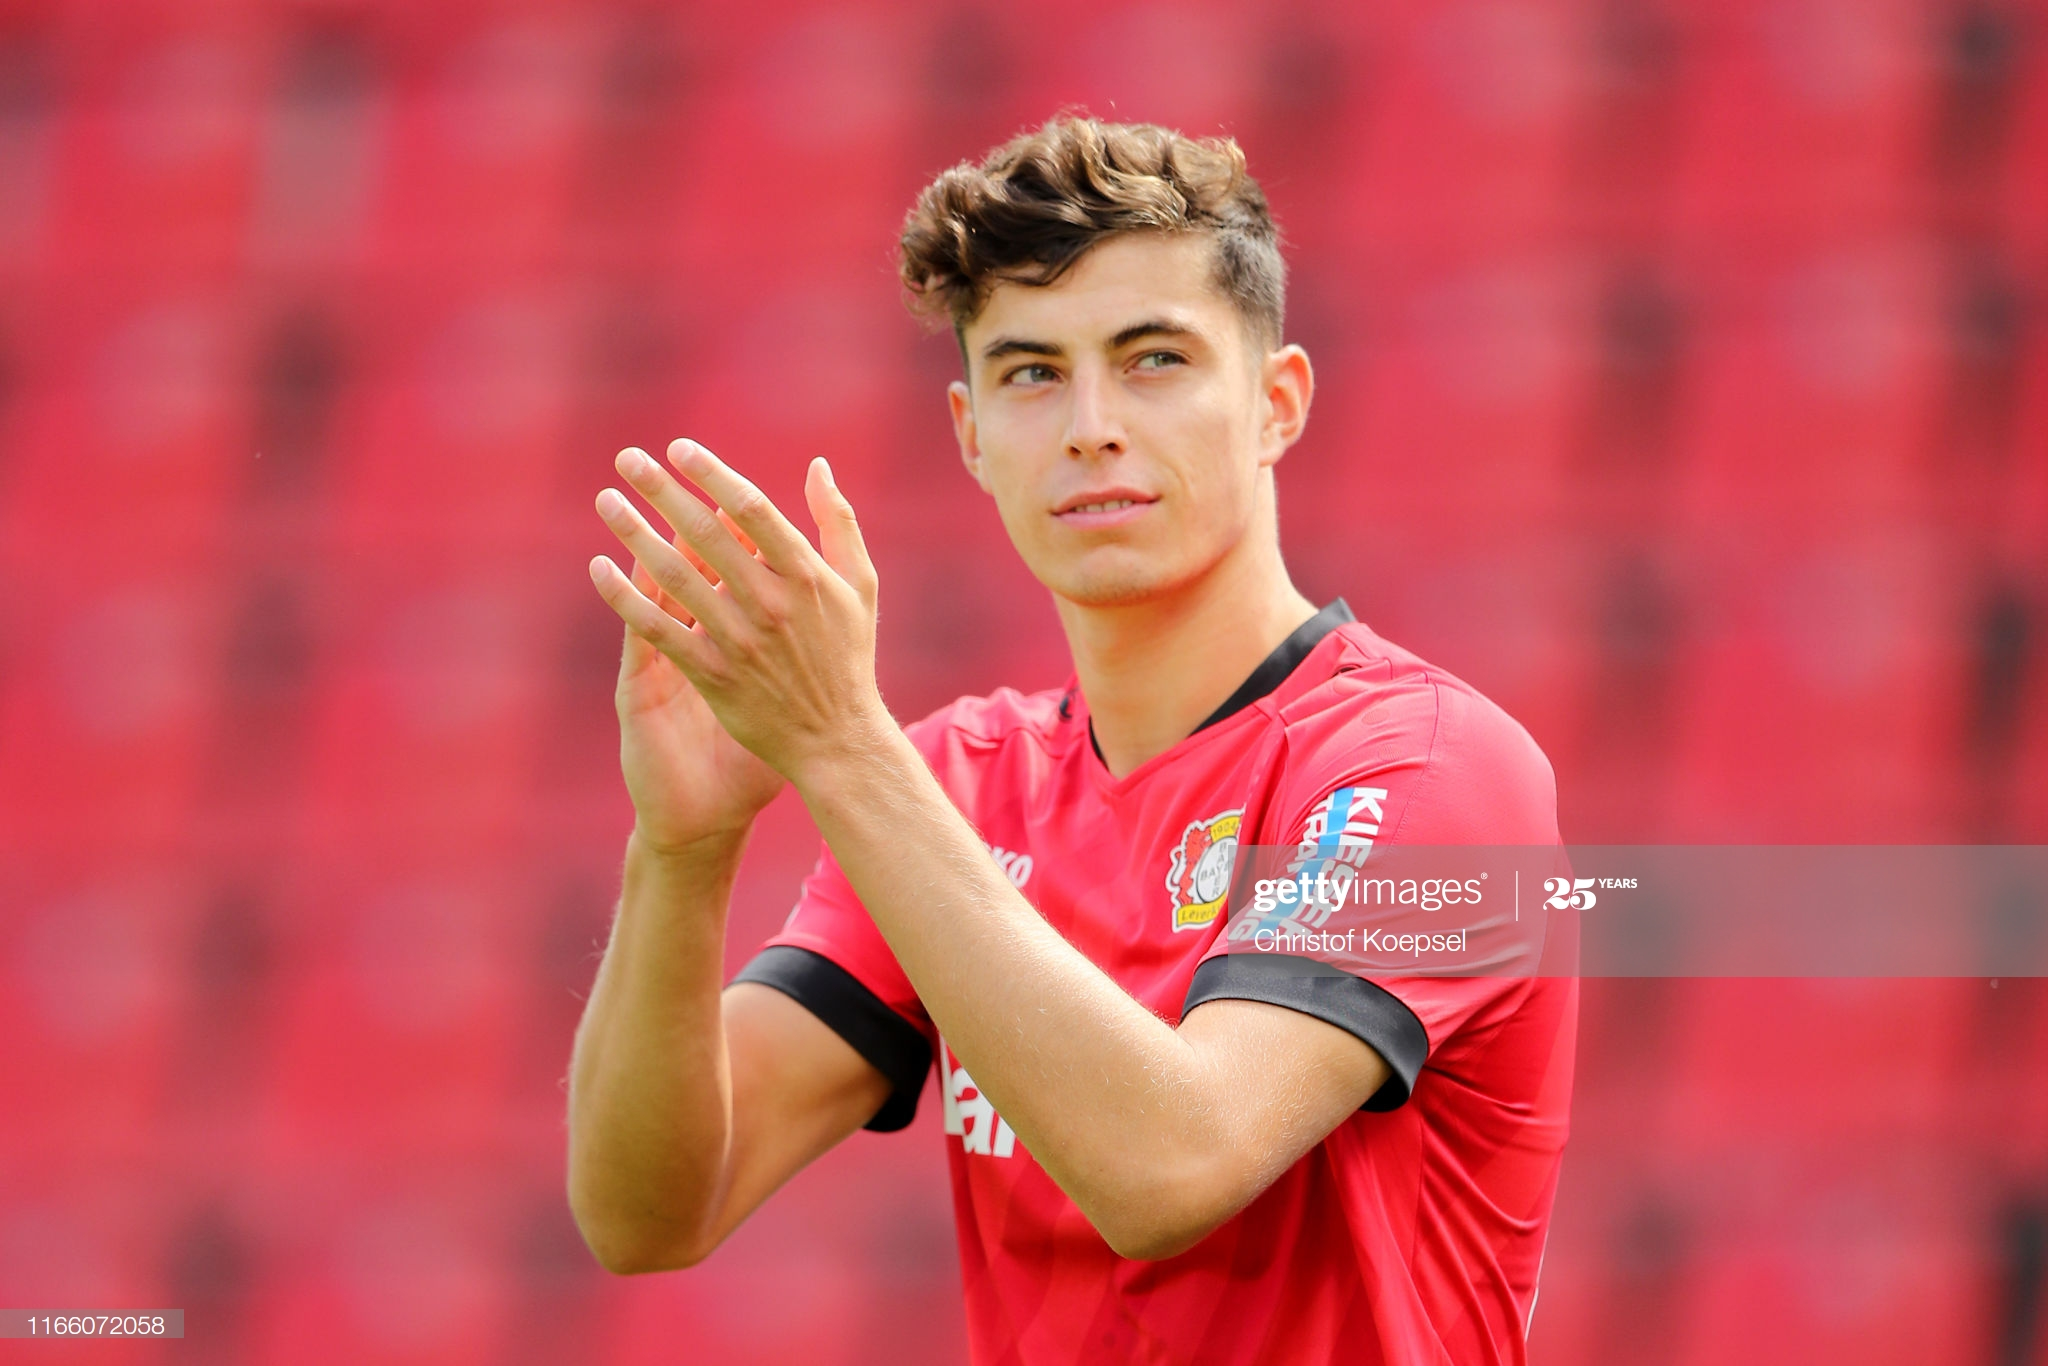 LEVERKUSEN, GERMANY - AUGUST 04: Kai Havertz of Leverkusen welcomes the fans during the opening show prior to the pre-season friendly match between Bayer 04 Leverkusen and FC Valencia at BayArena on August 04, 2019 in Leverkusen, Germany. (Photo by Christof Koepsel/Bongarts/Getty Images)